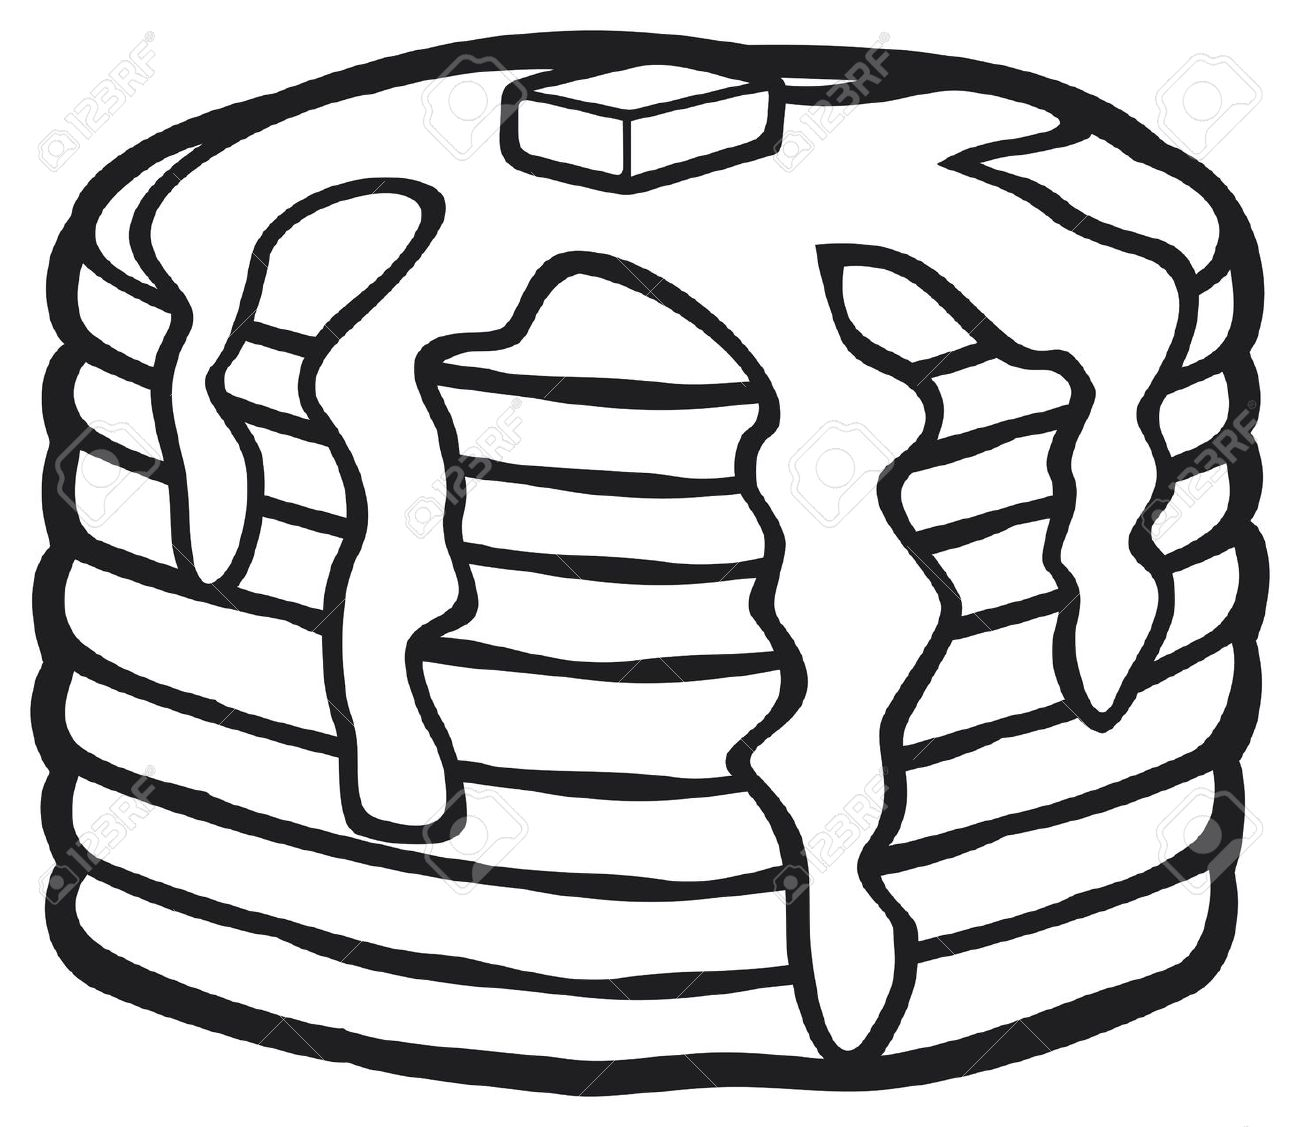 Pancakes Clipart Black And White.